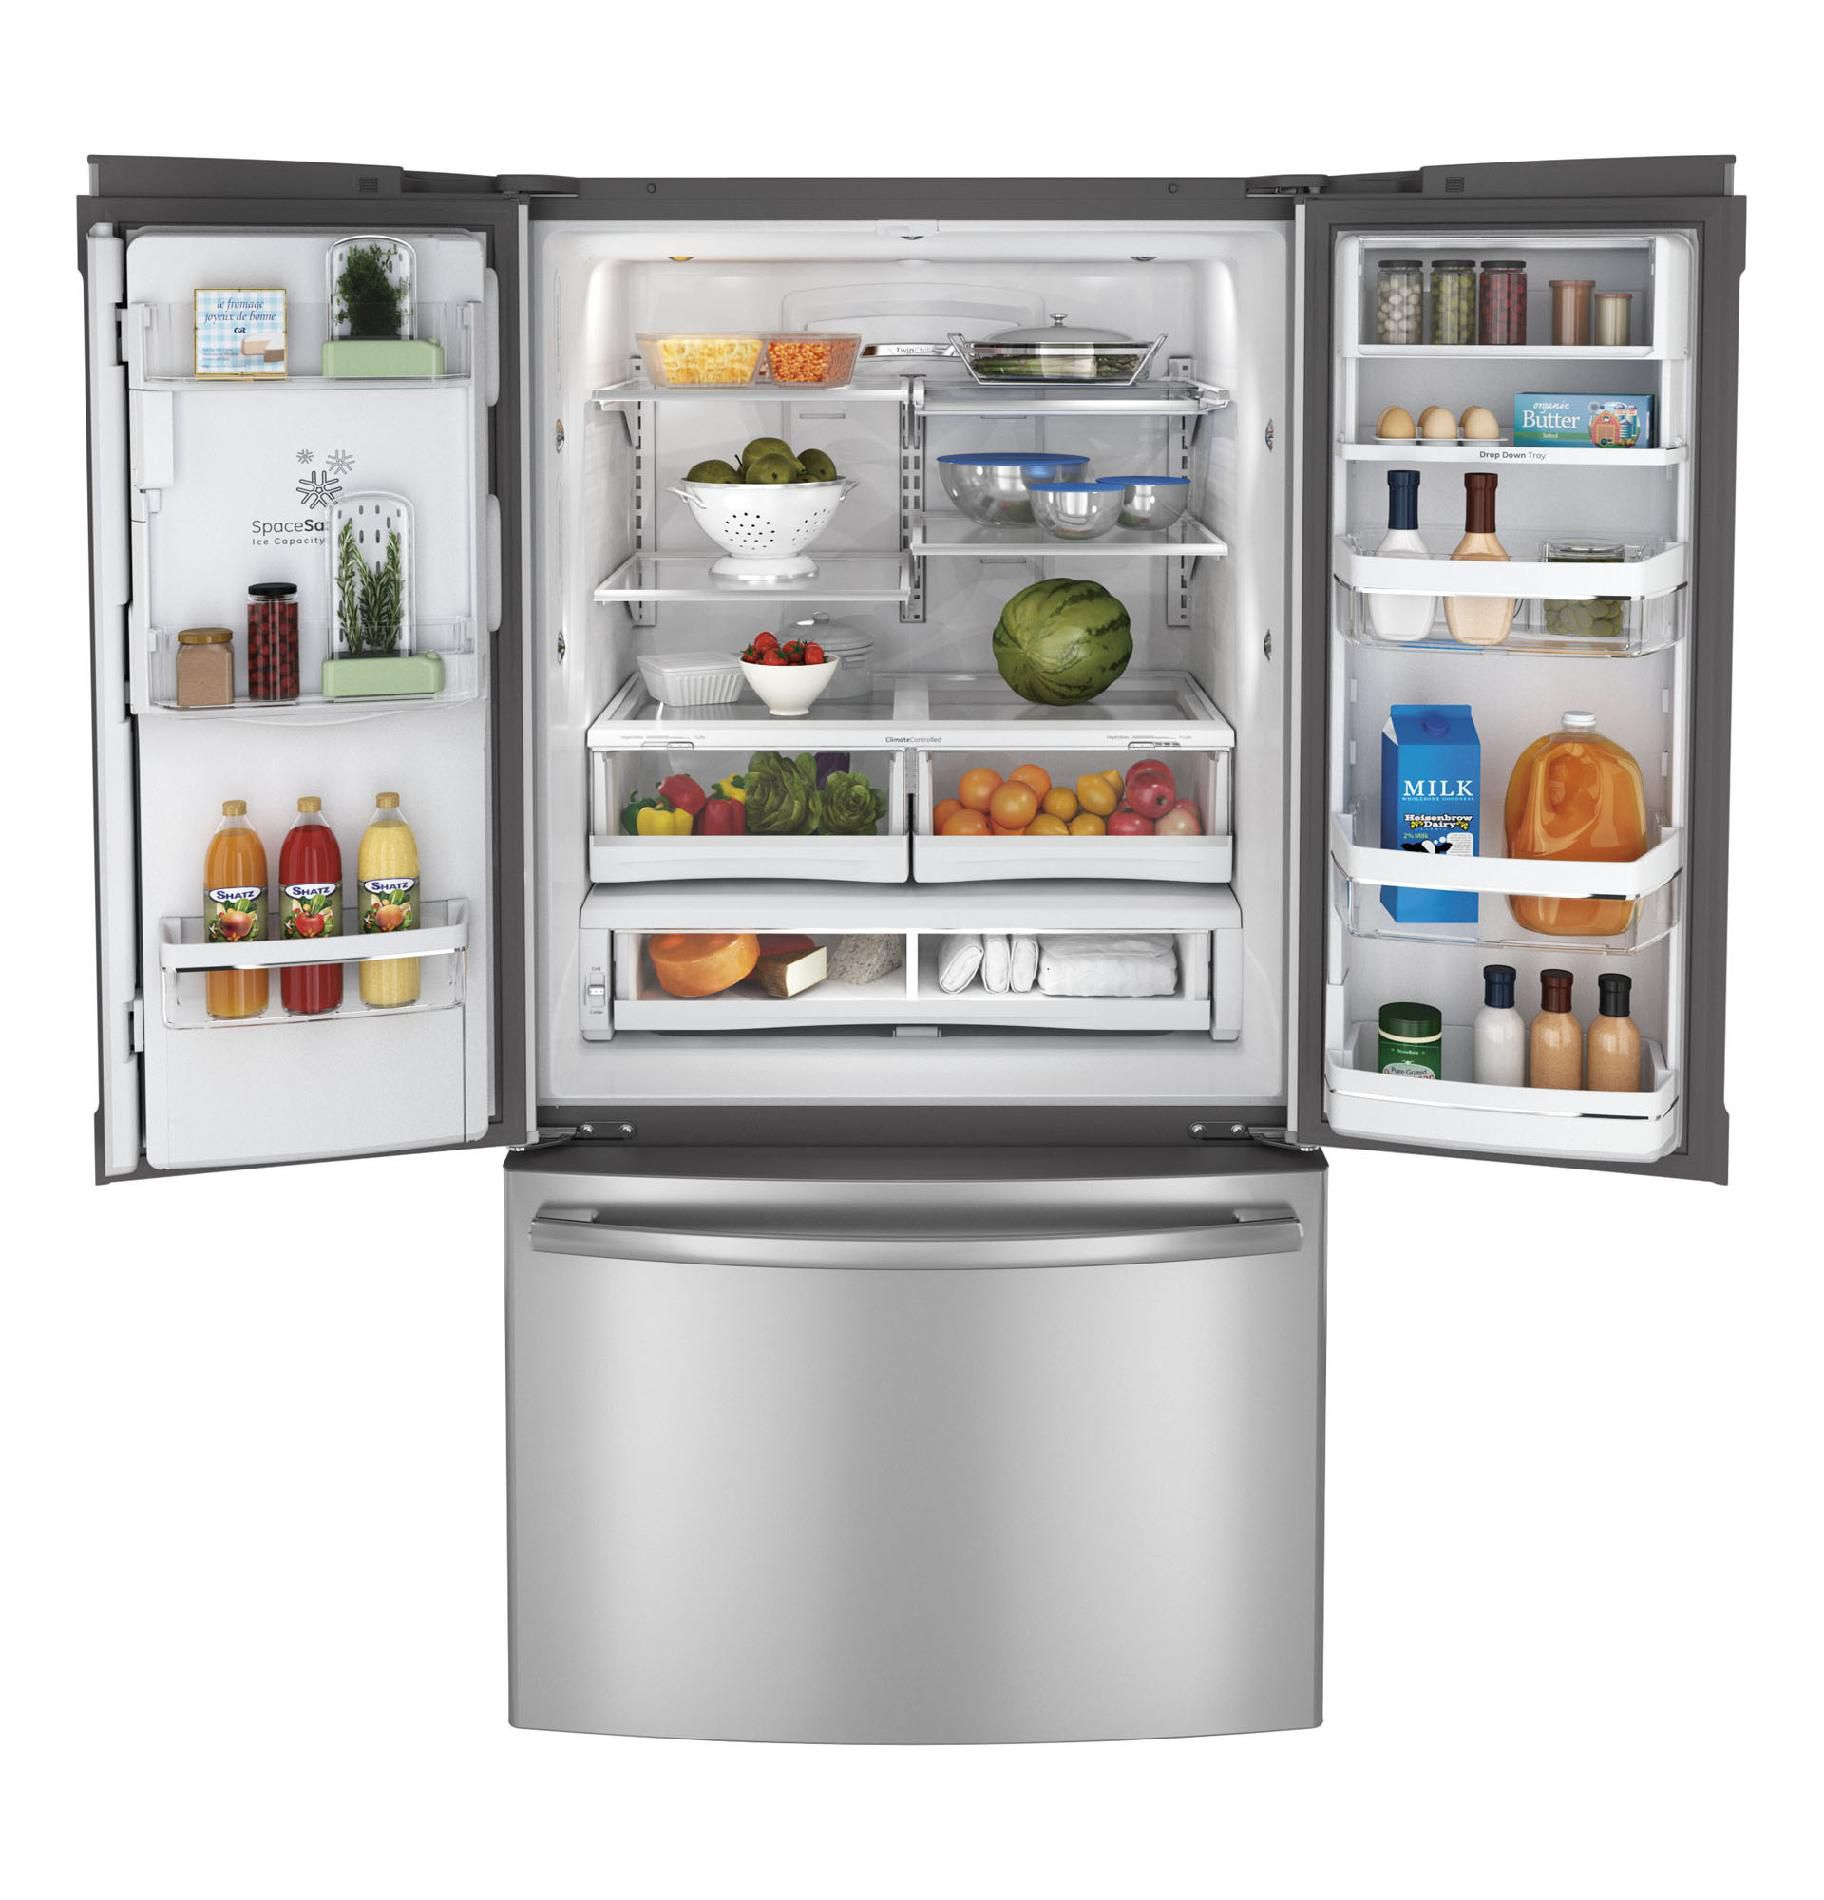 GE Profile 23.1 cu. ft. Counter-Depth French Door Refrigerator - Stainless Steel